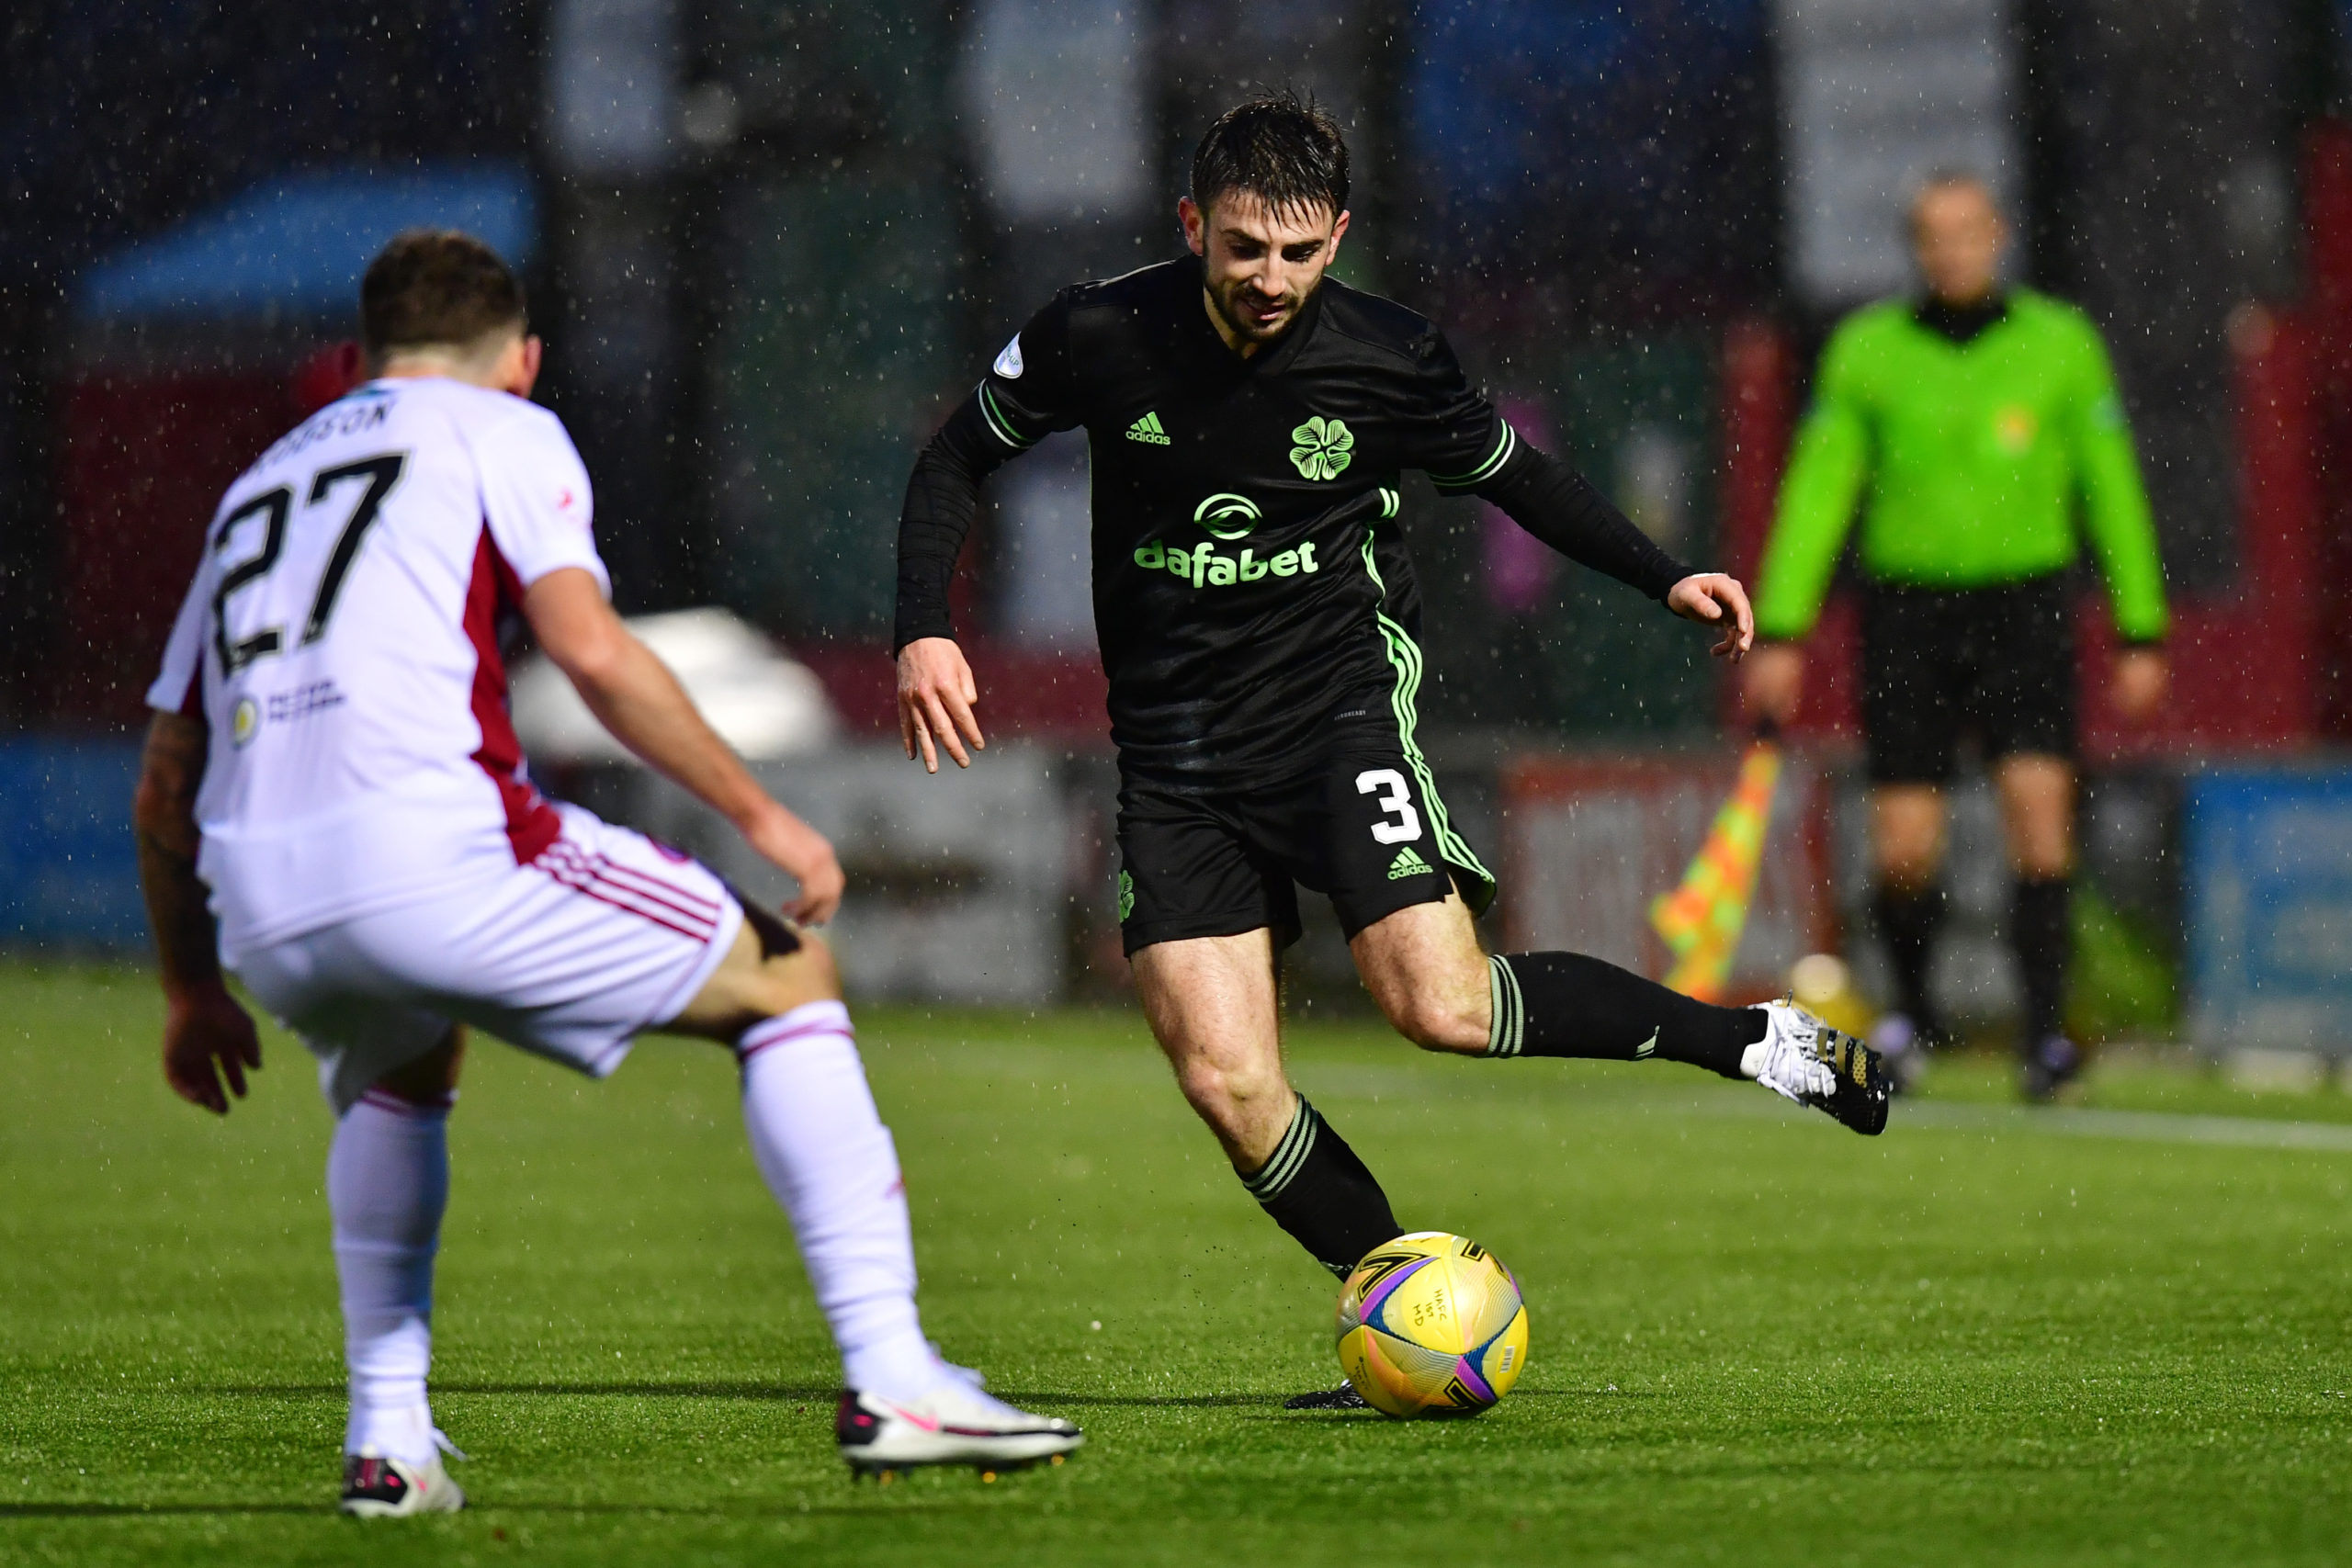 Hamilton Academical v Celtic - Ladbrokes Scottish Premiership